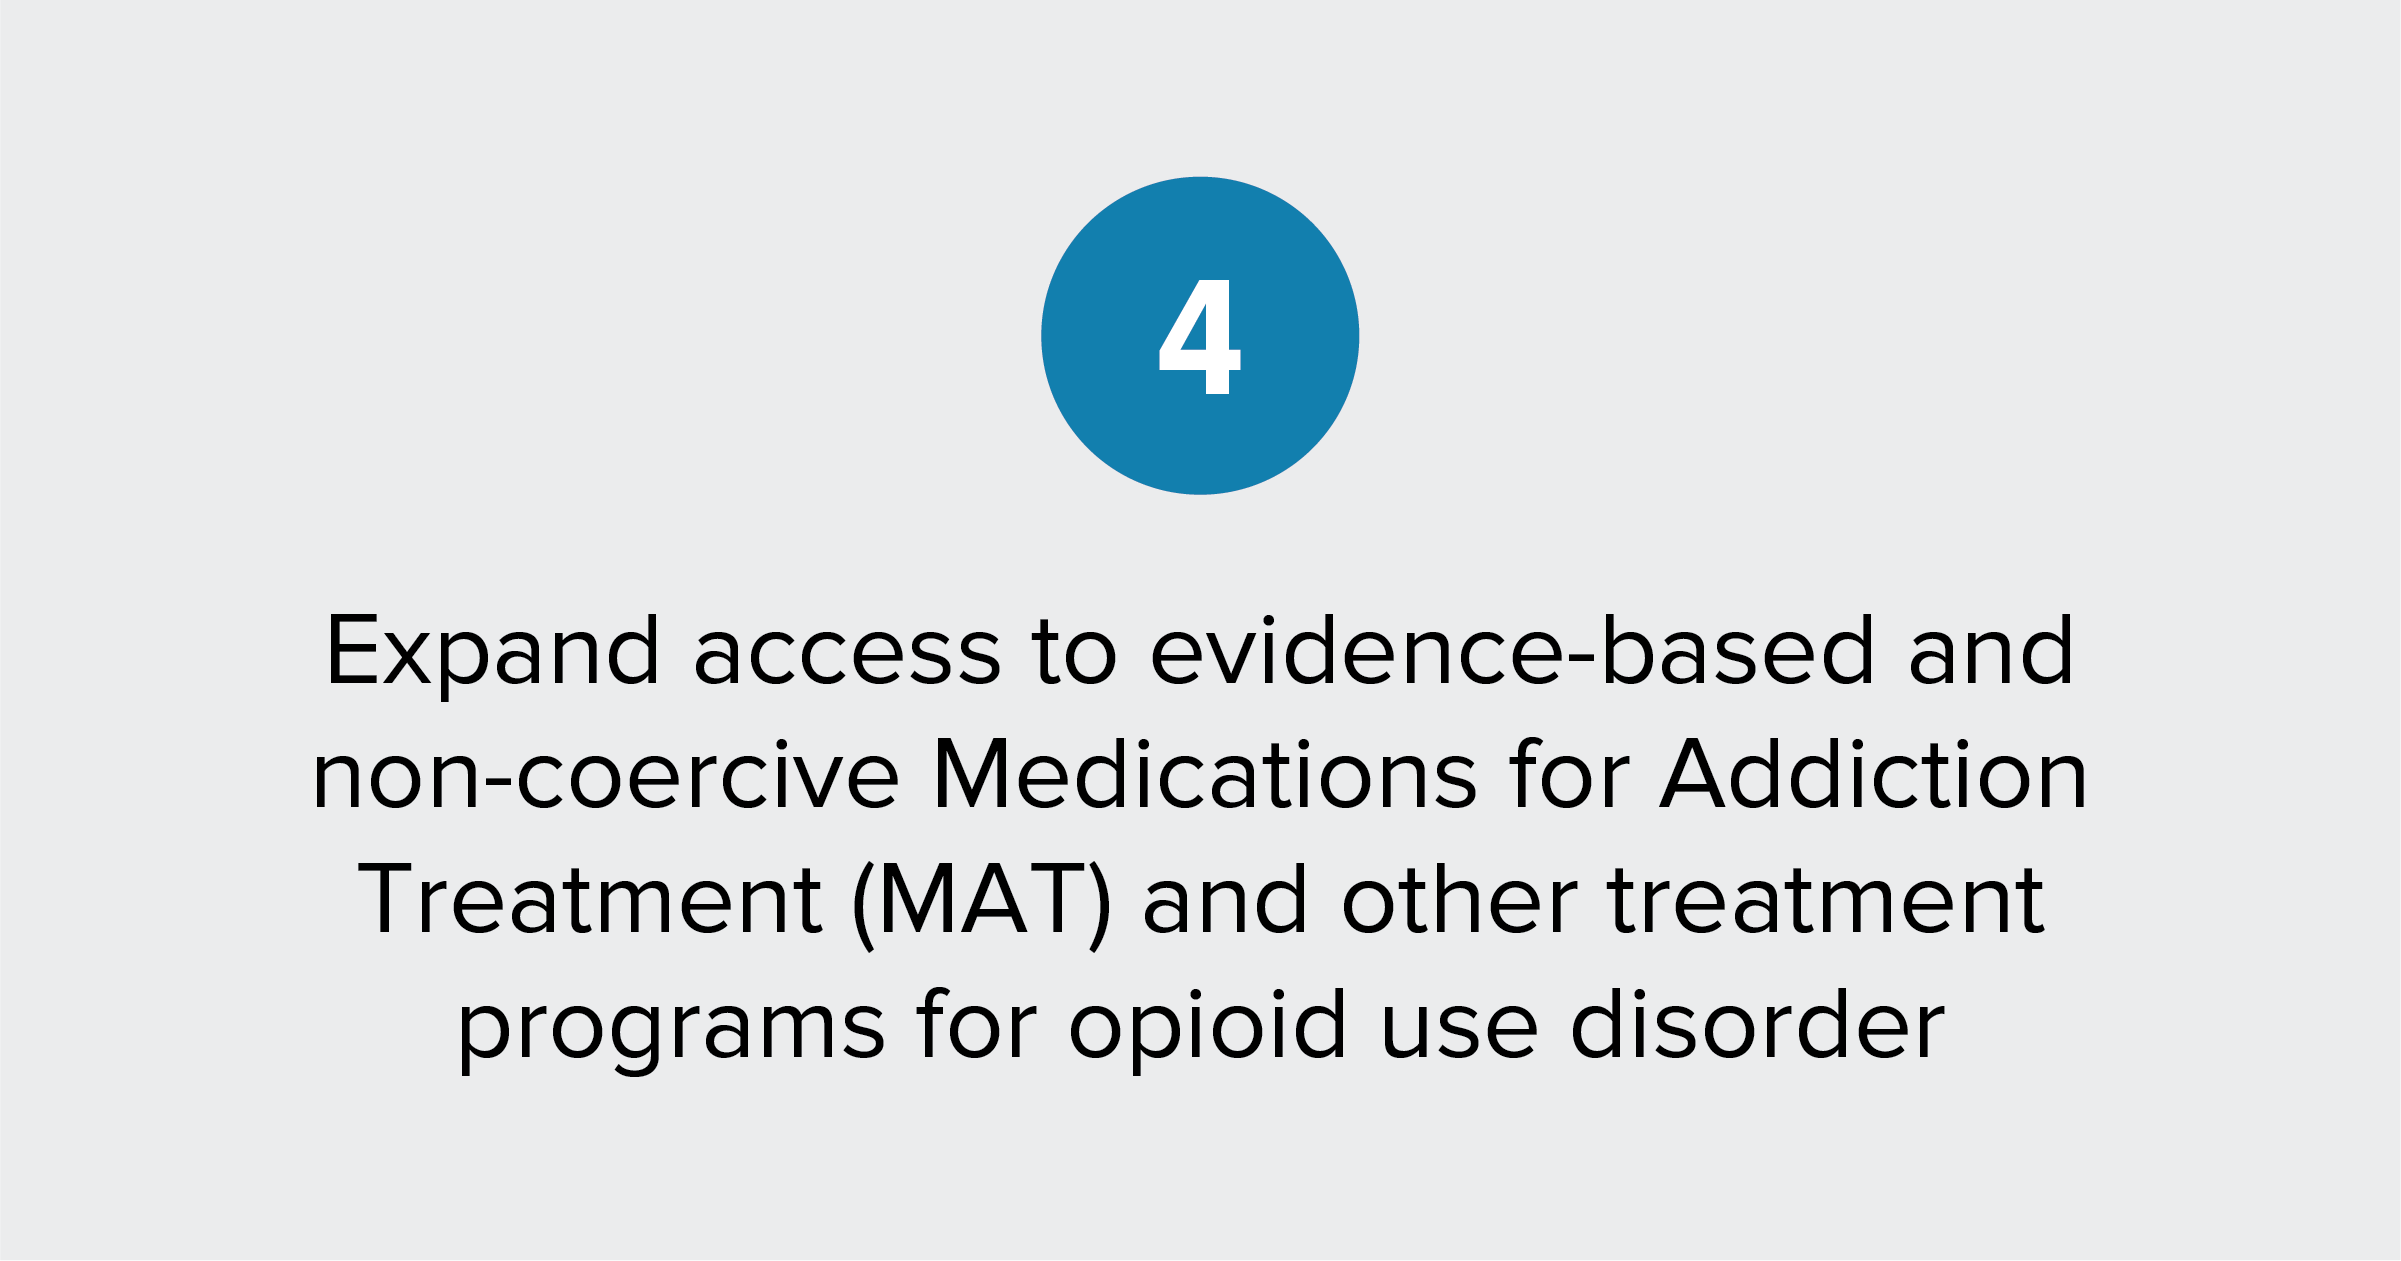 Text of report recommendation 4: Expand access to evidence-based and non-coercive Medications for Addiction Treatment (MAT) and other treatment programs for opioid use disorder